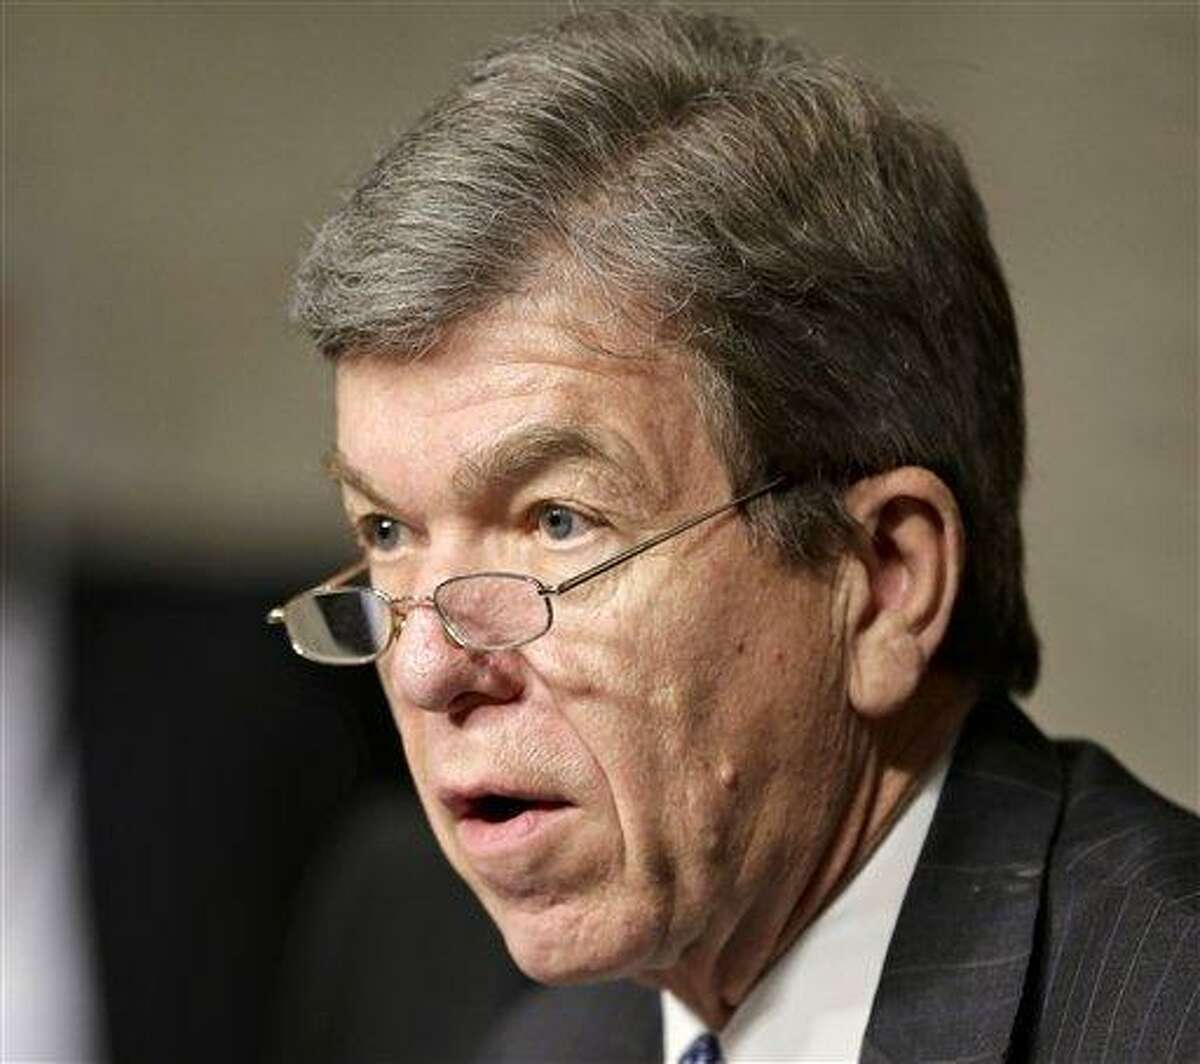 FILE - In this Jan. 31, 2013 file photo, Sen. Roy Blunt, R-Mo. speaks on Capitol Hill in Washington. The Senate pressed ahead Wednesday on a huge, bipartisan spending bill aimed at keeping the government running through September and ruling out the chance of a government shutdown later this month. Blunt said he's been promised a vote on an amendment eagerly sought by the meatpacking and poultry industries that would offer them relief from food inspector furloughs that threaten to intermittently shutter plants. (AP Photo/J. Scott Applewhite, File)